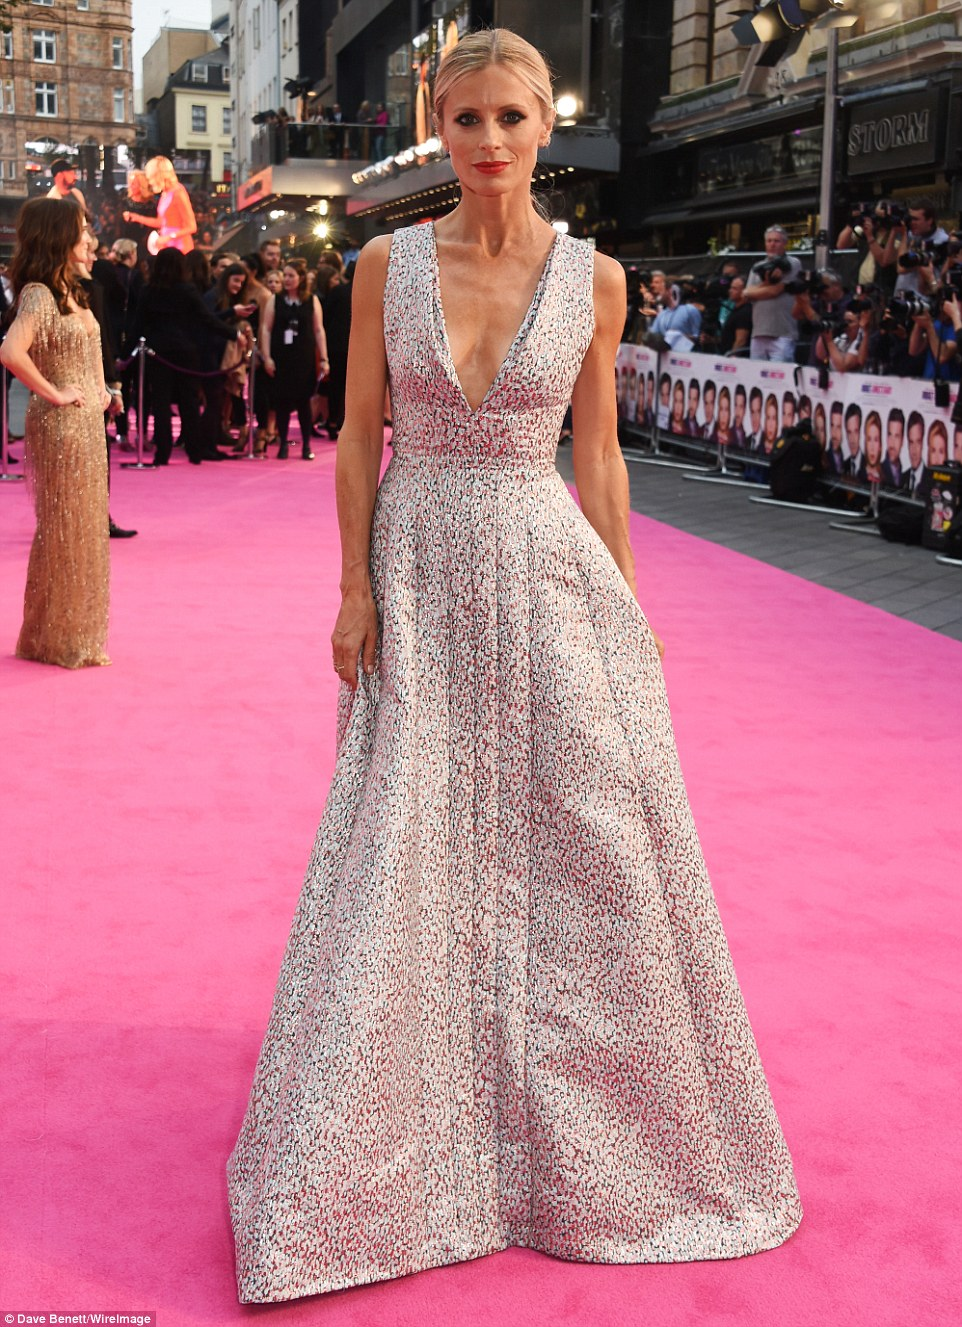 Stunning in silver: Supermodel Laura Bailey was an eye catching sight on the pink carpet